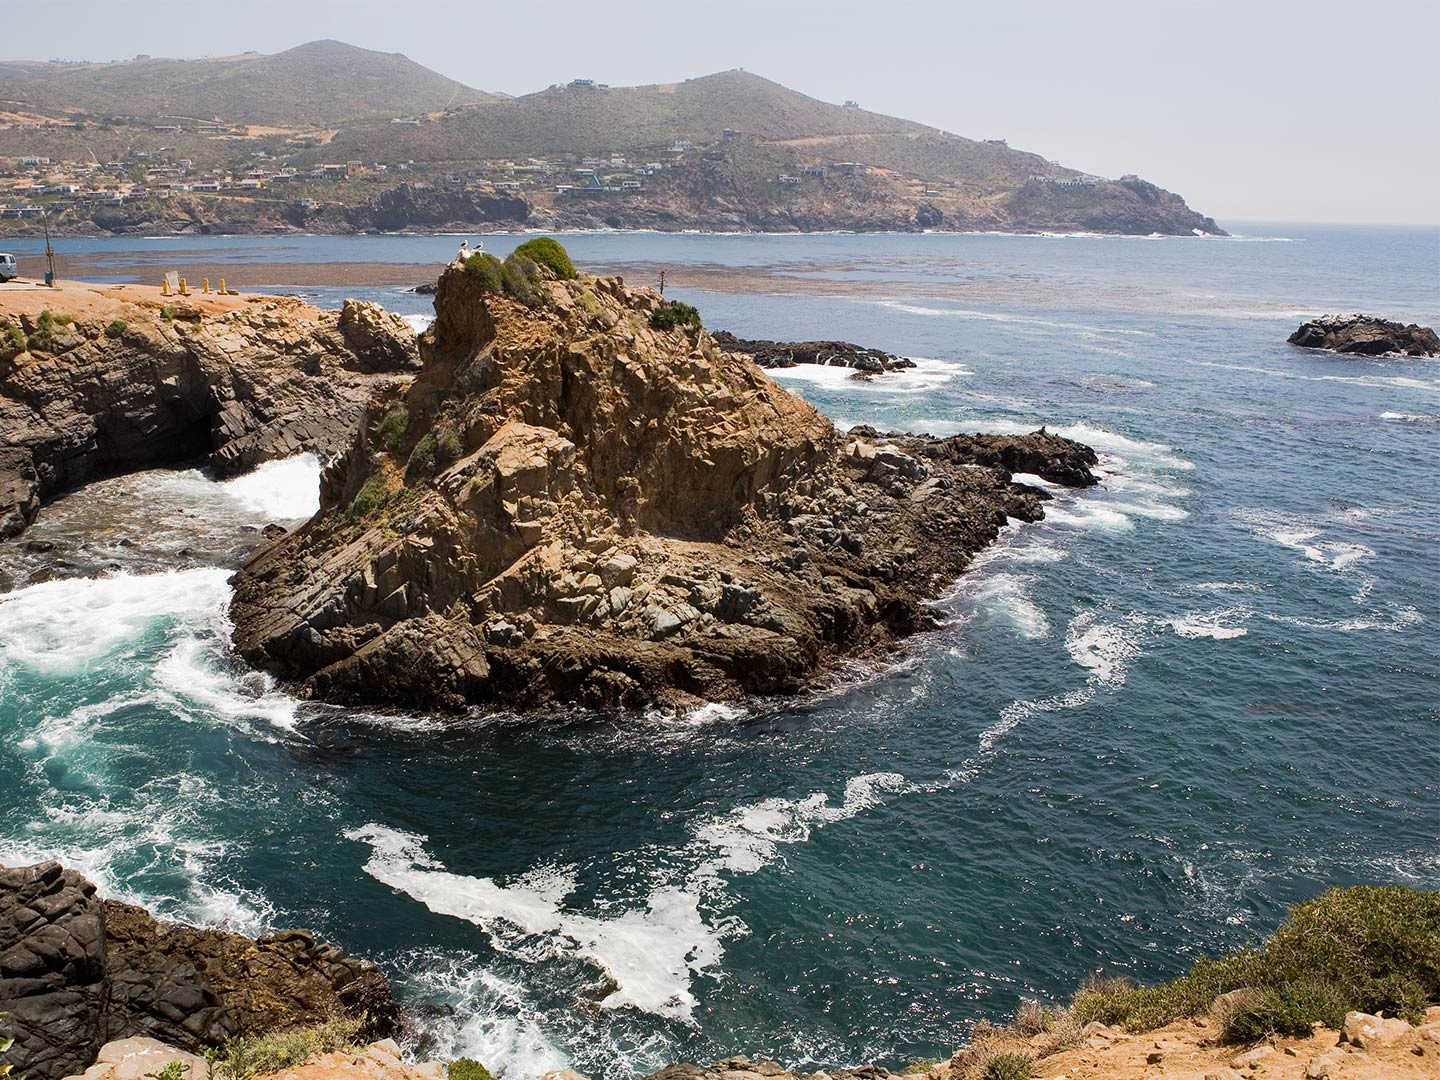 Rocks stick out of the water in the All Saints Bay looking towards Ensenada